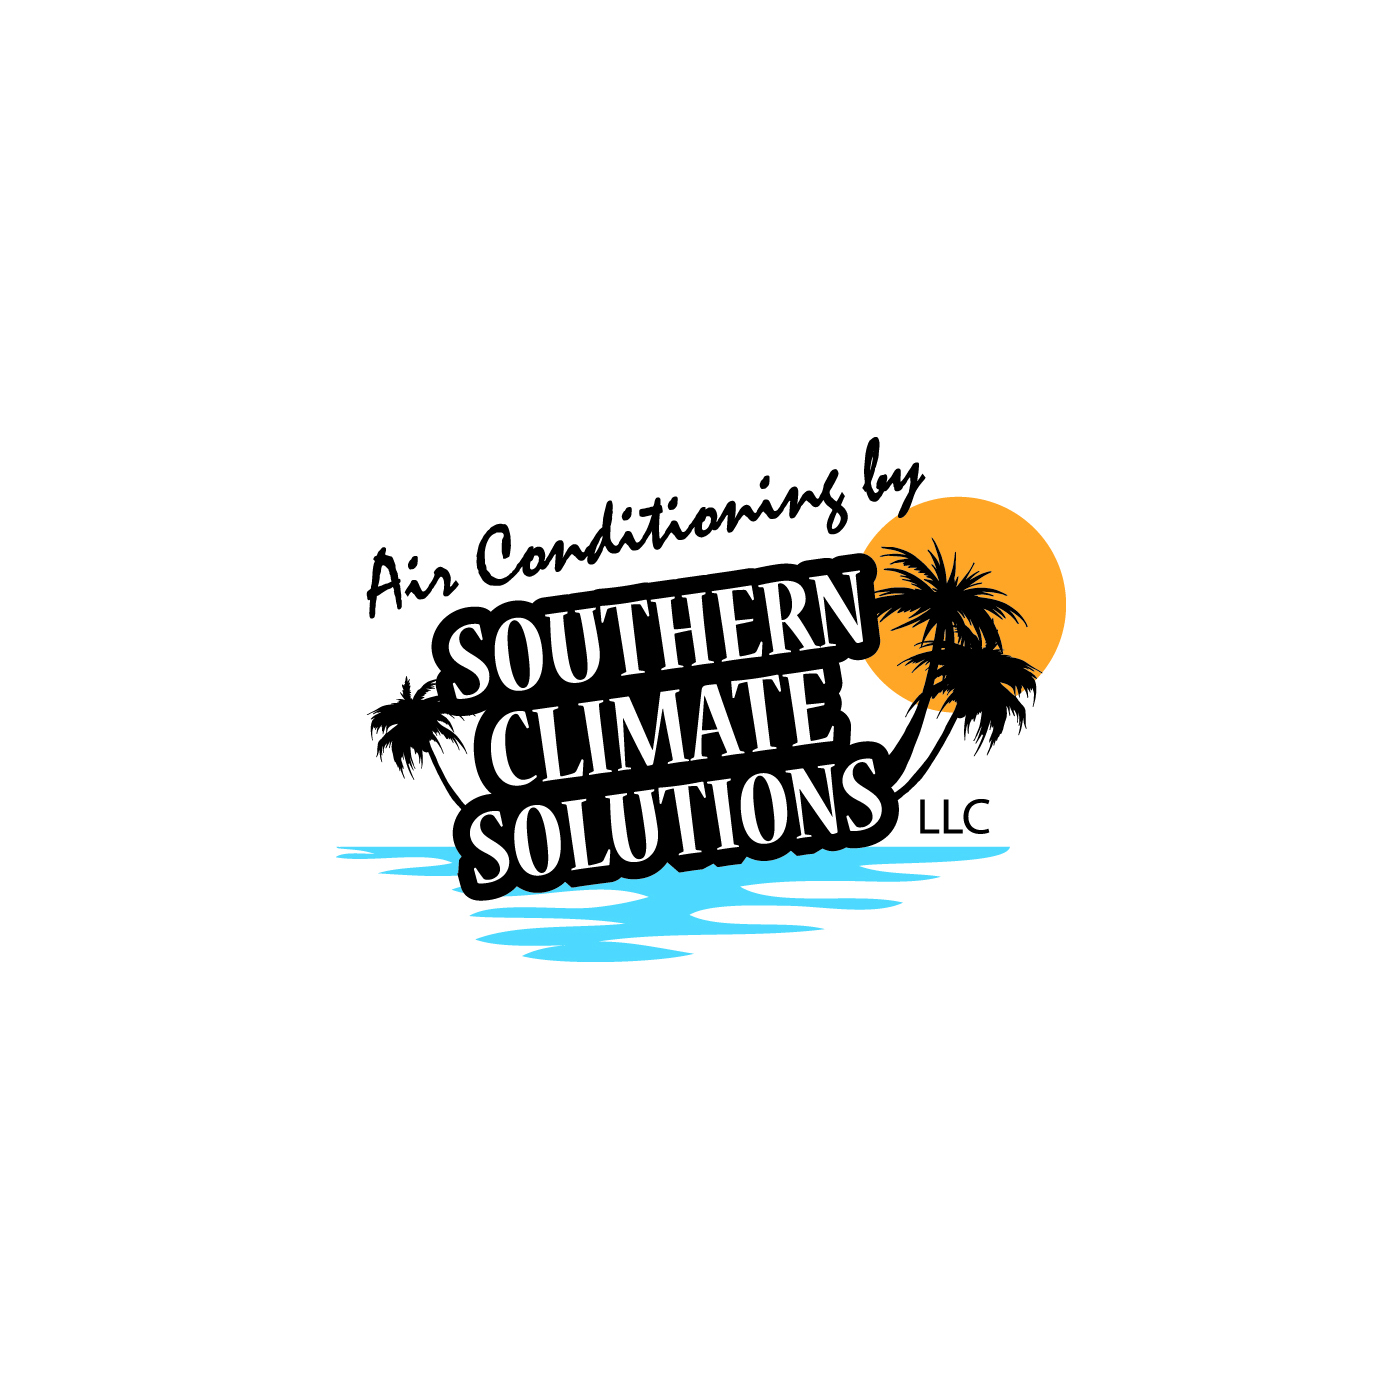 Southern Climate Solutions